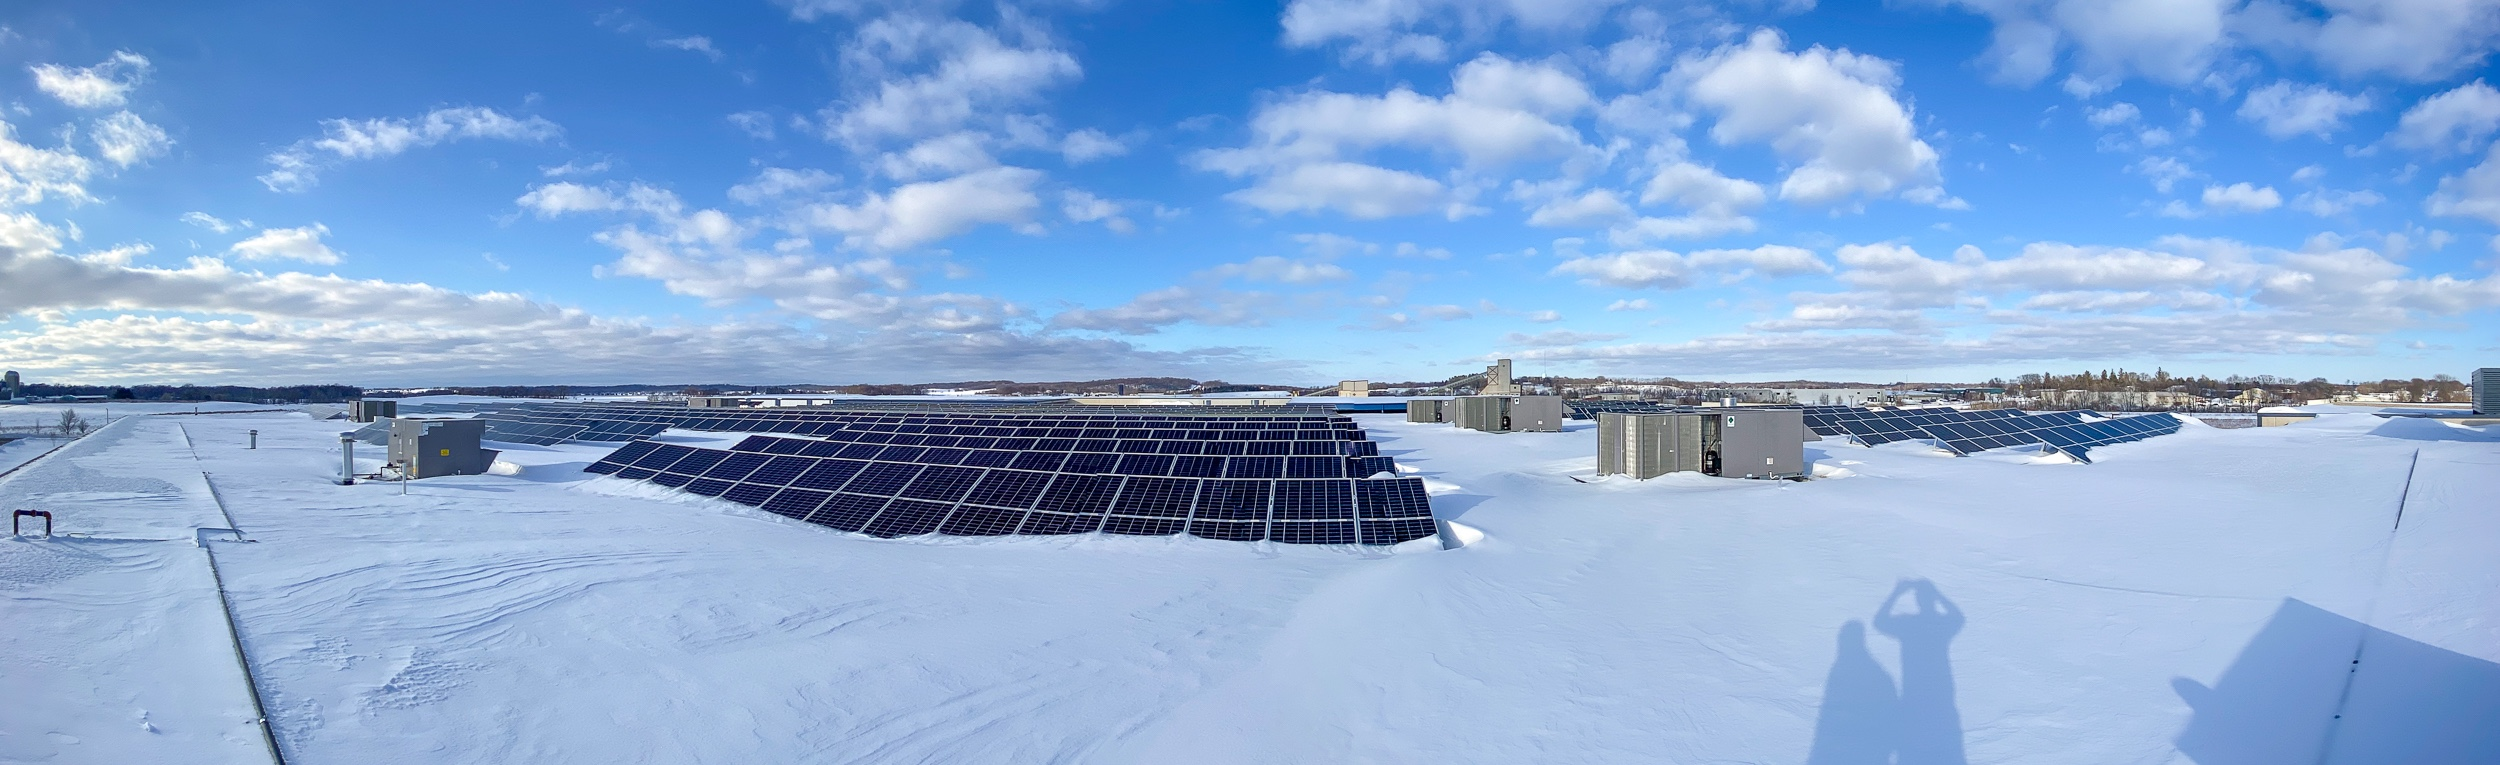 solar panels in winter